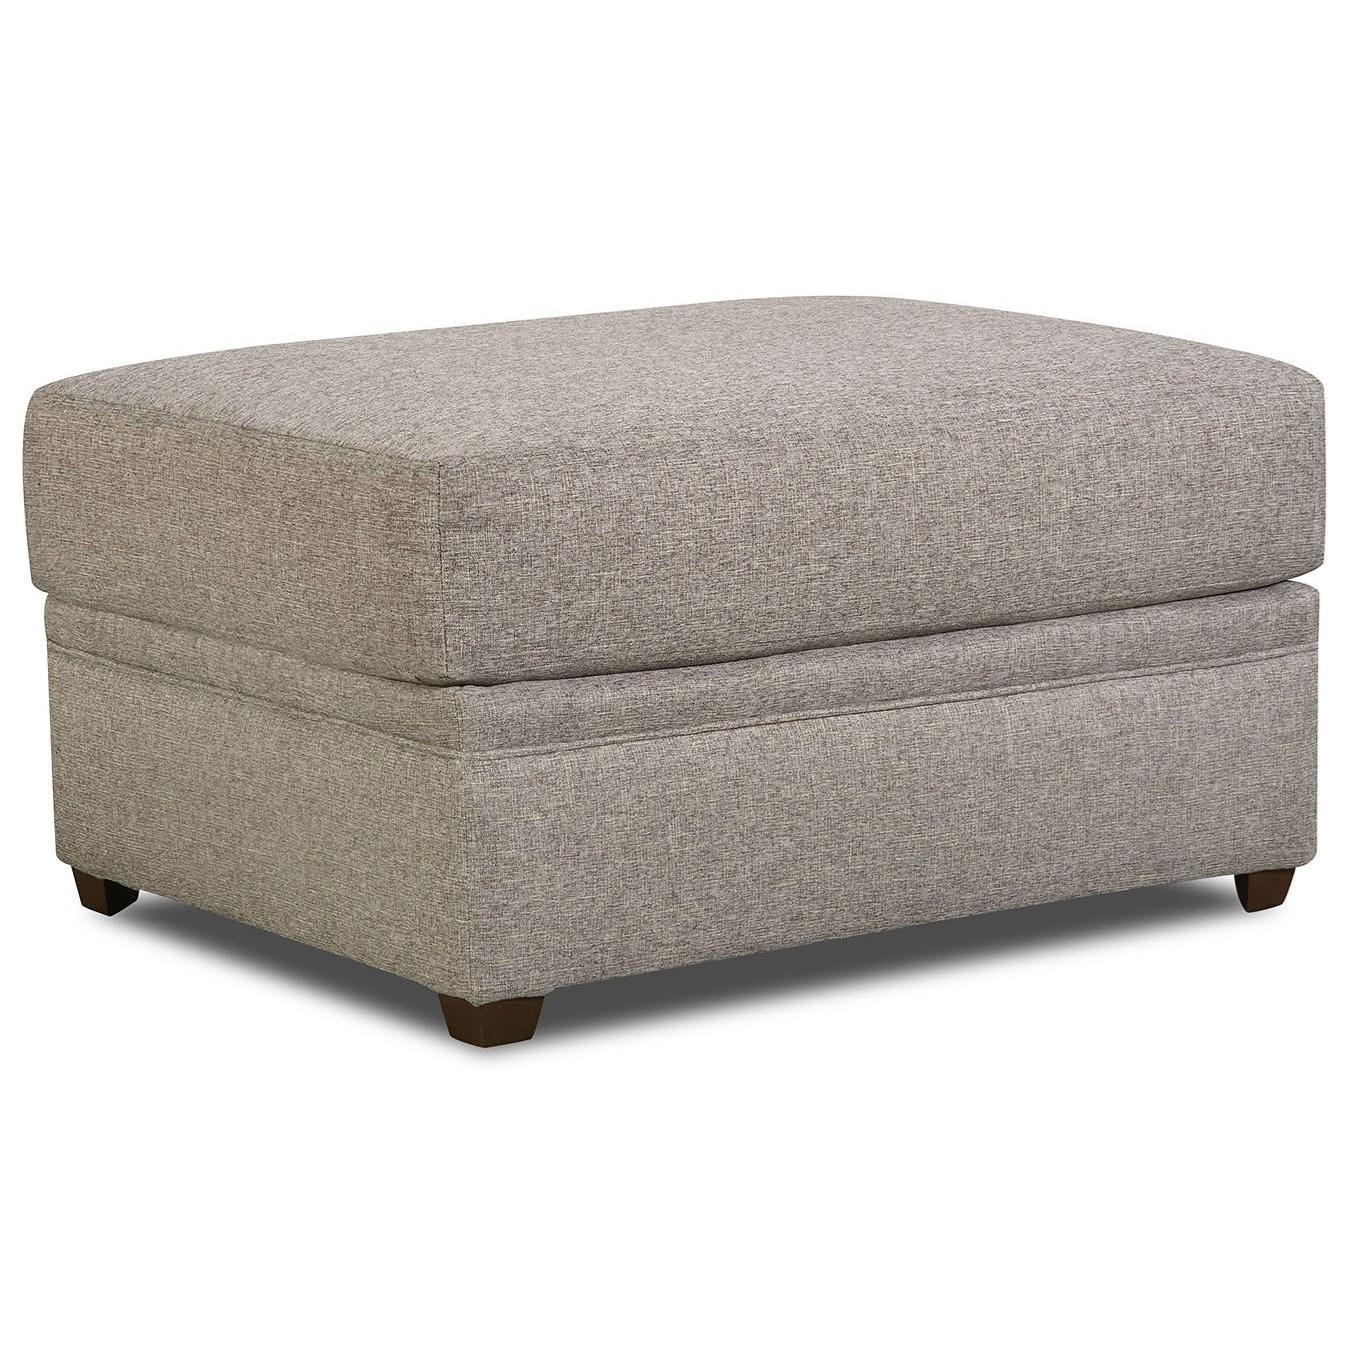 8561BR Ottoman by United Furniture Industries at Dream Home Interiors